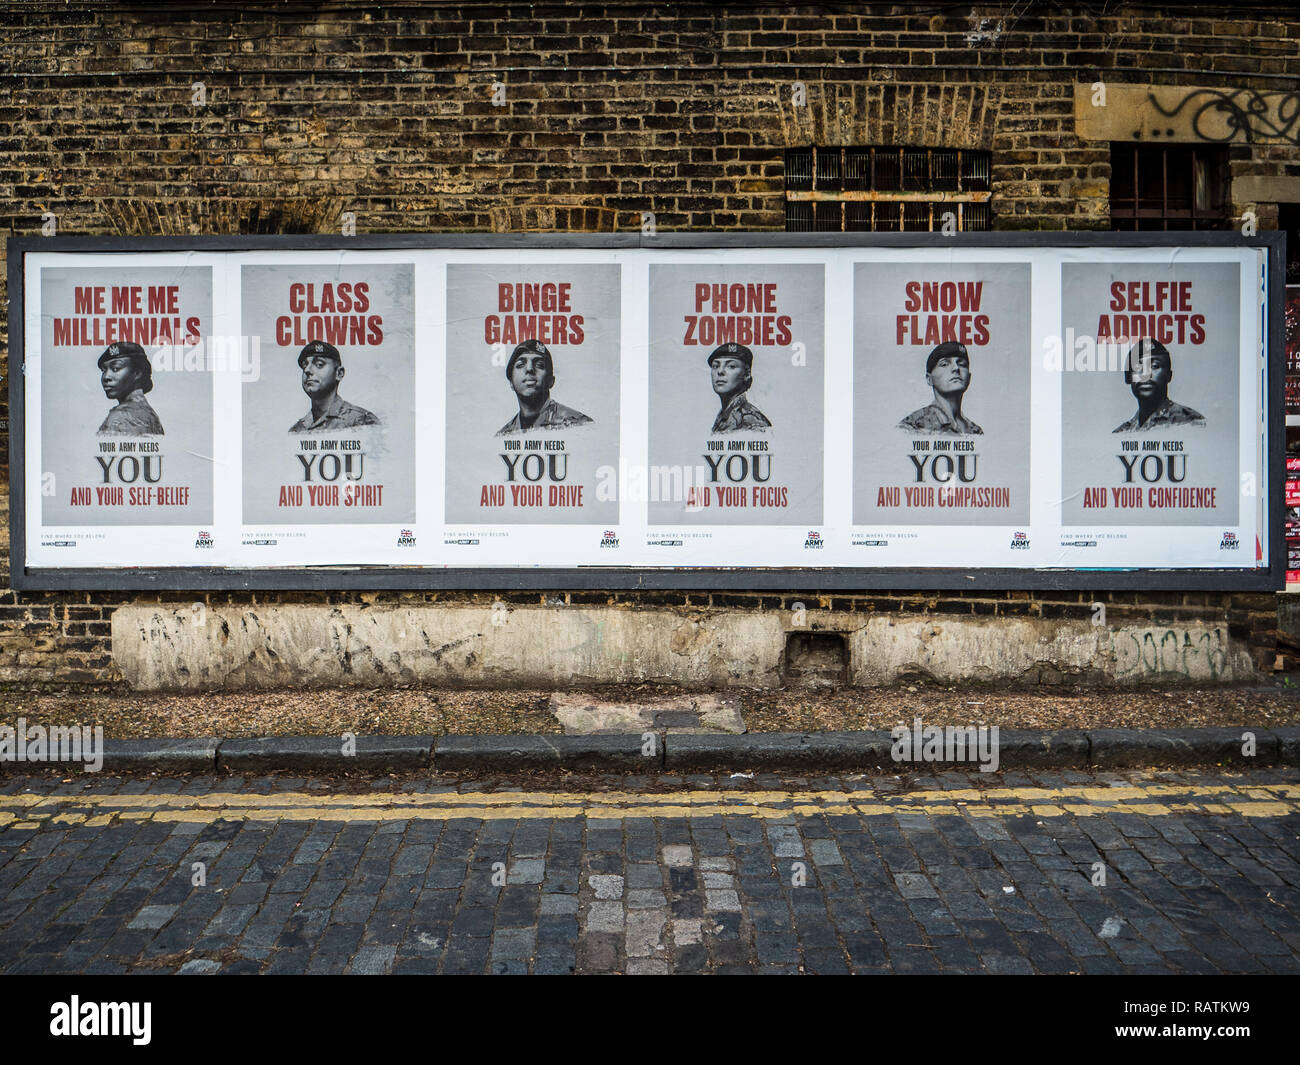 Army Recruitment Posters East London - controversial British Army Recruitment Posters designed to appeal to a more diverse range of young people - Stock Image